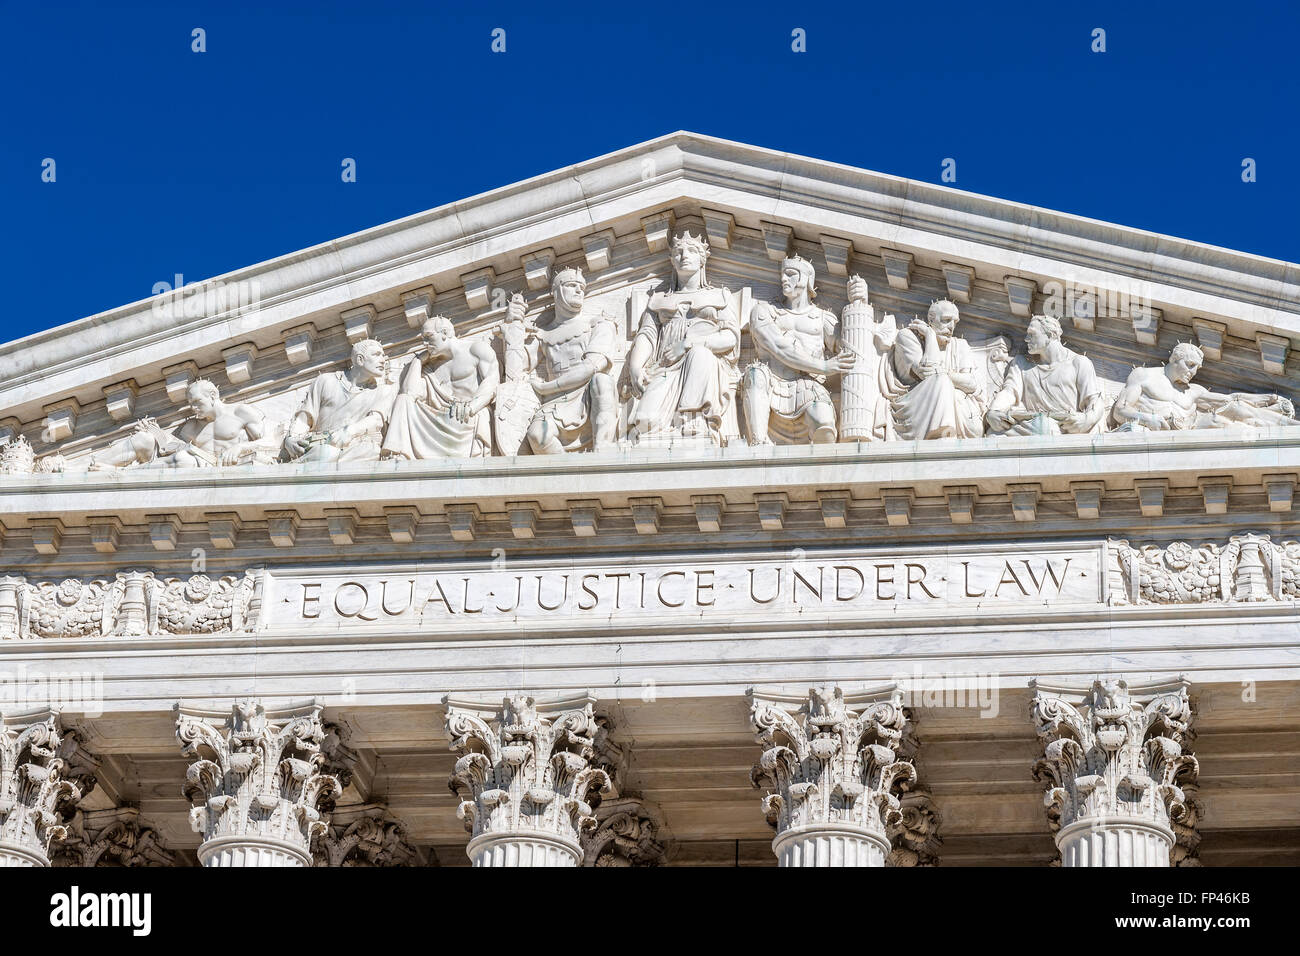 Washington DC. Main frieze of the US Supreme Court Building. On the architrave the famous words Equal Justice Under - Stock Image